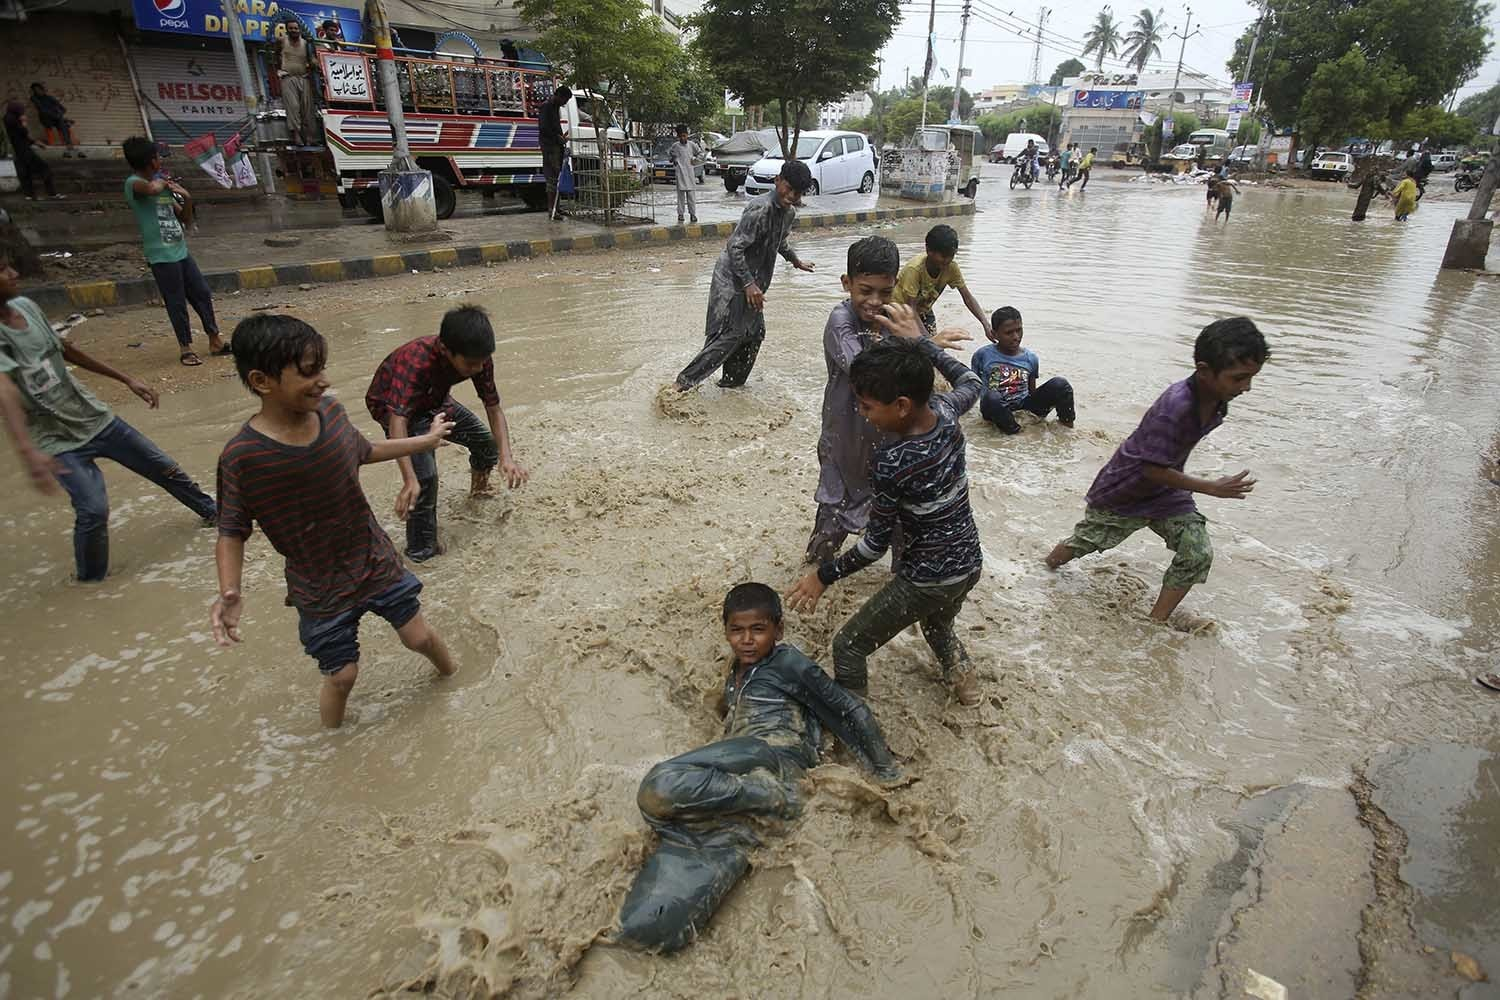 Boys play in a flooded street after a heavy rainfall in Karachi on Monday. — AP